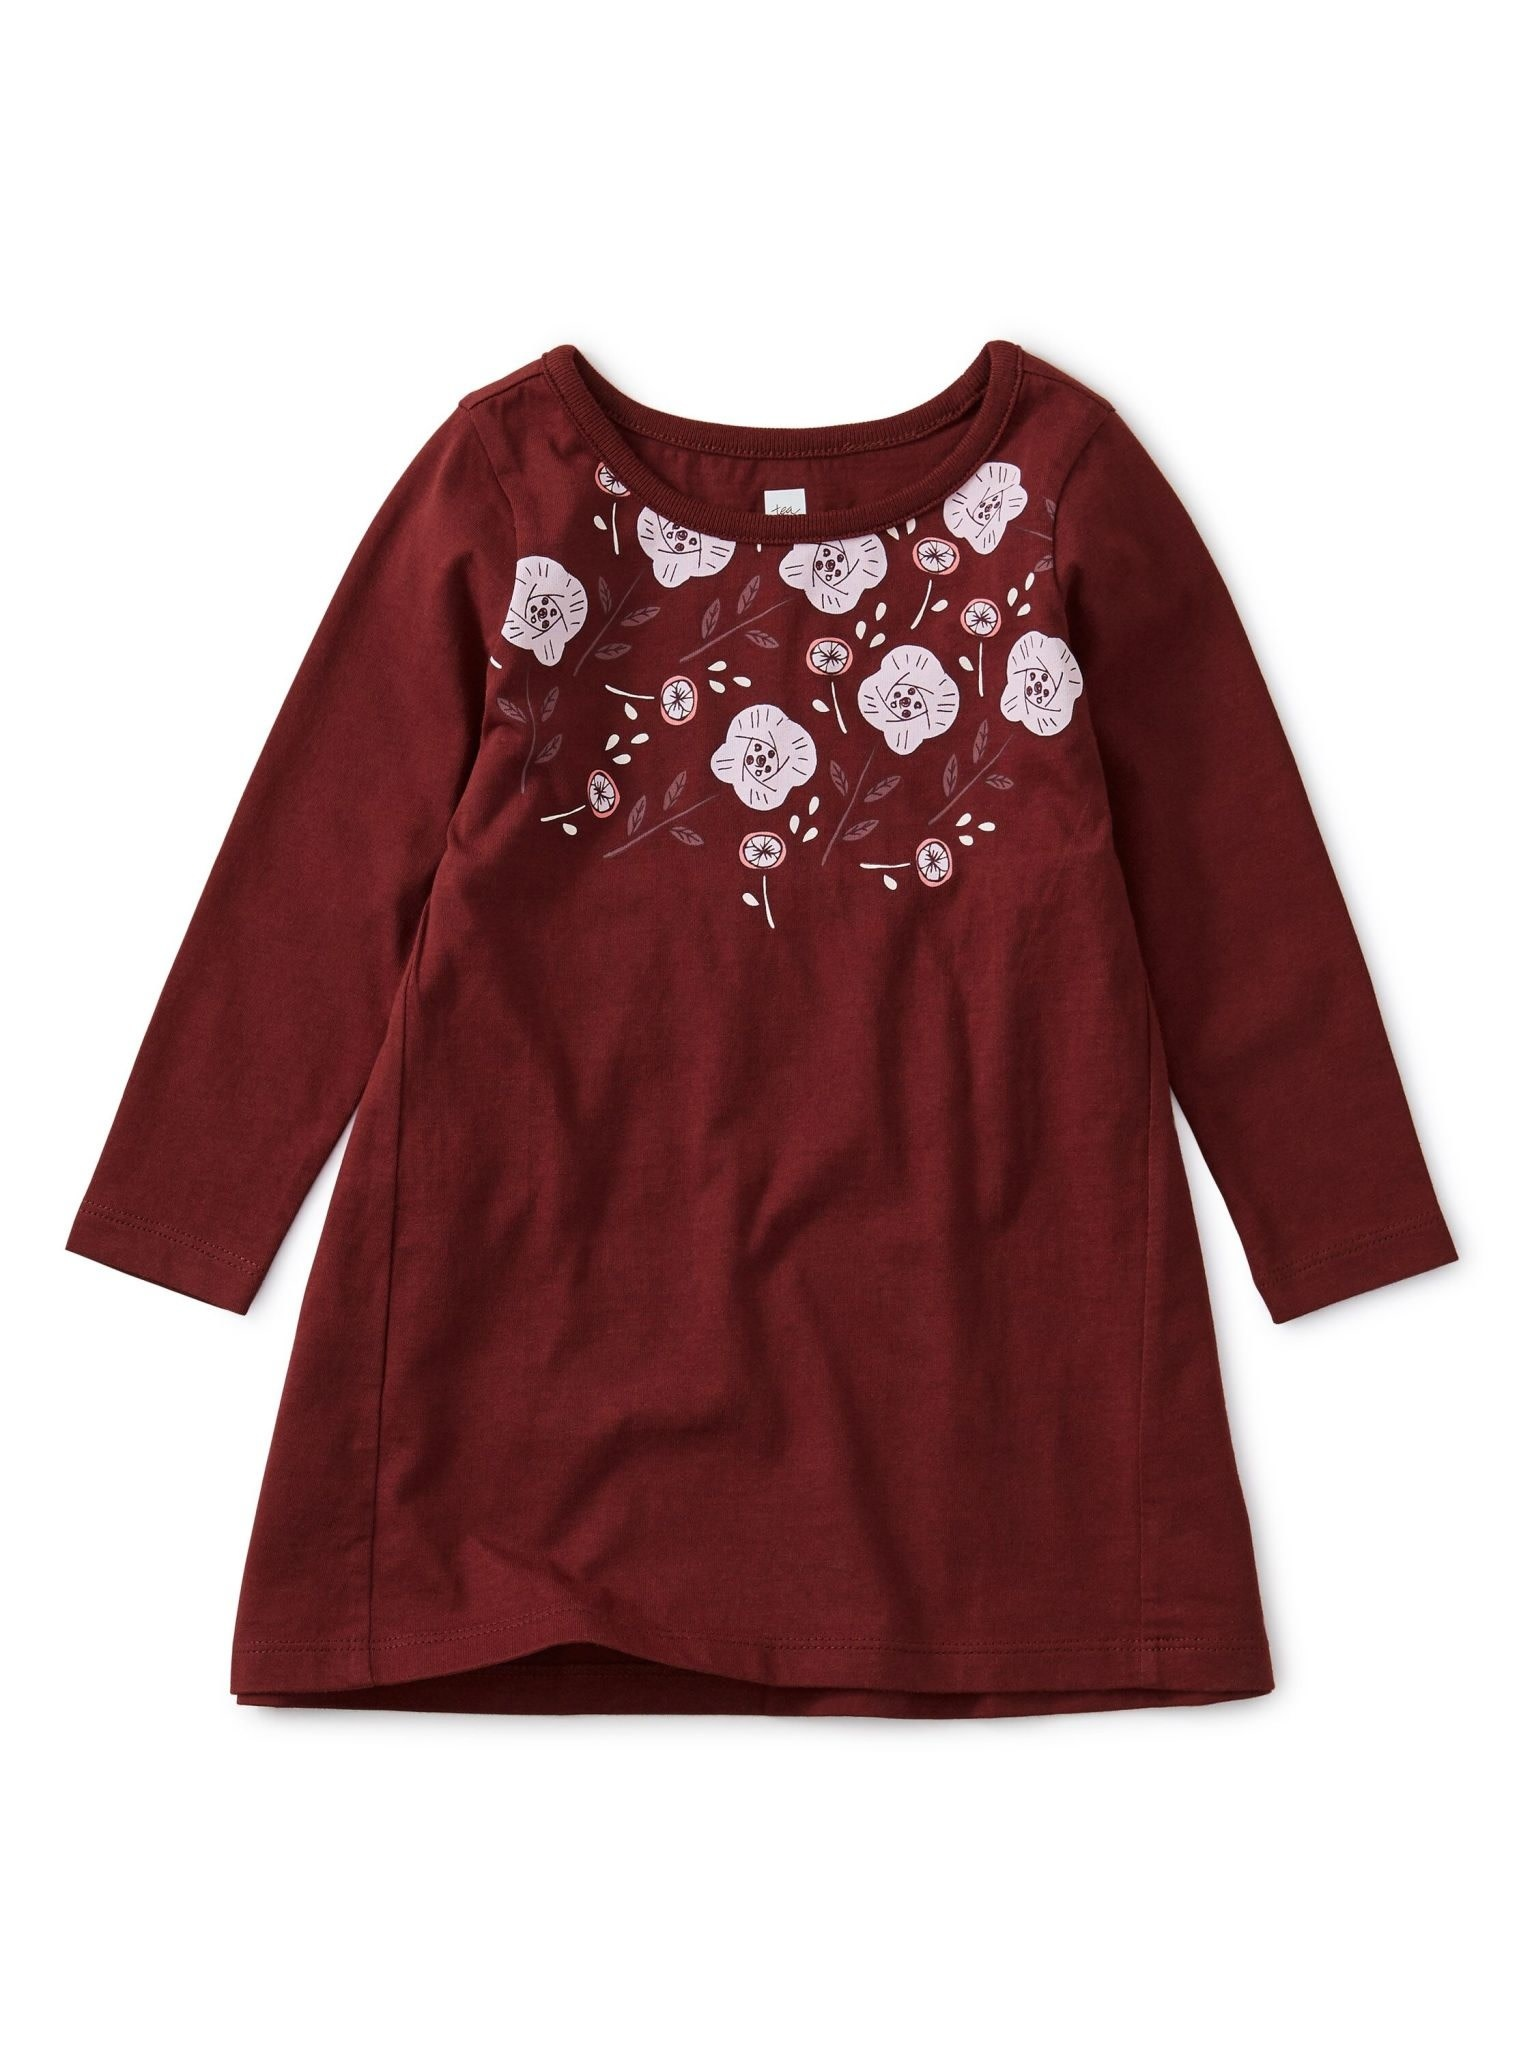 Tea Collection Floral Baby Dress - Boysenberry  6-9M